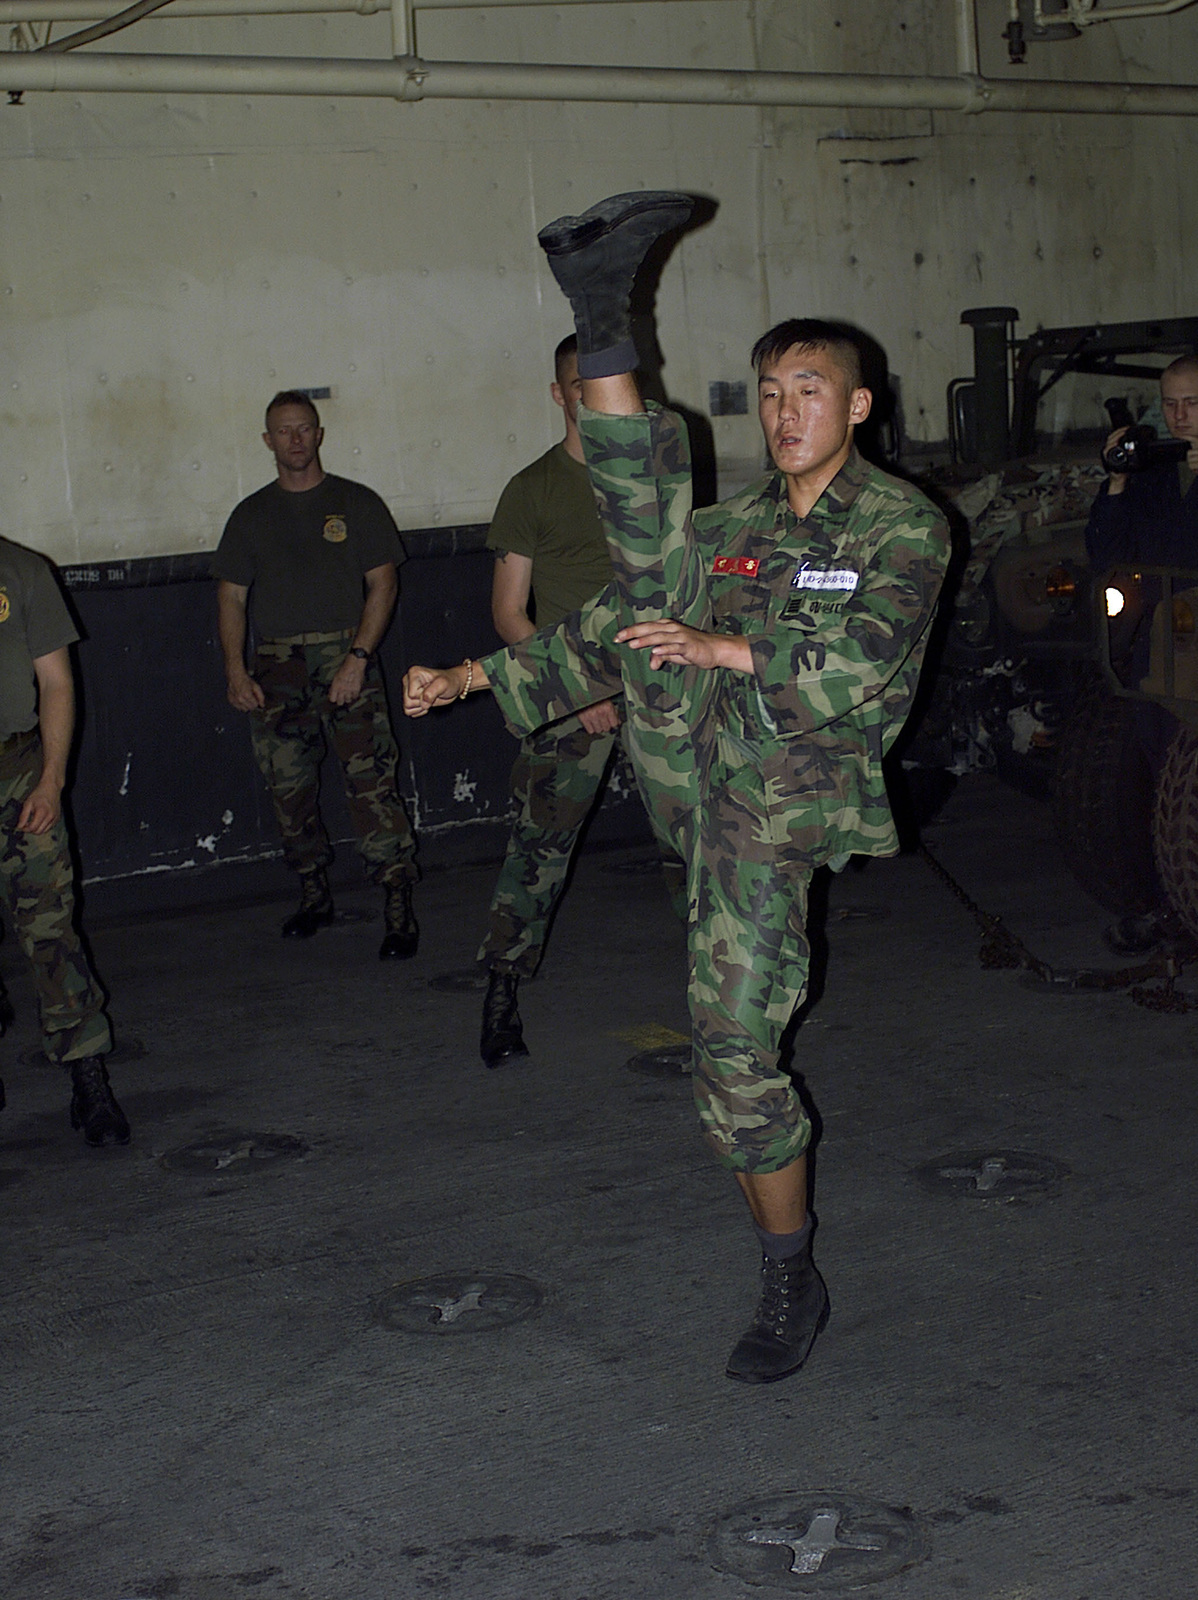 A Republic of Korea (ROK) Marine shows the US Marines how they battle during close combat, aboard the USS Essex (LHD 2) during the FOAL EAGLE 2000 exercise, while off the coast of Pohang, Korea. US Marines from the 31st Marine Expeditionary Unit (MEU), spent two months participating in various training operations on and off the coast of Okinawa, Japan, Sasebo, Japan, Pohang, Korea, and Hong Kong, China